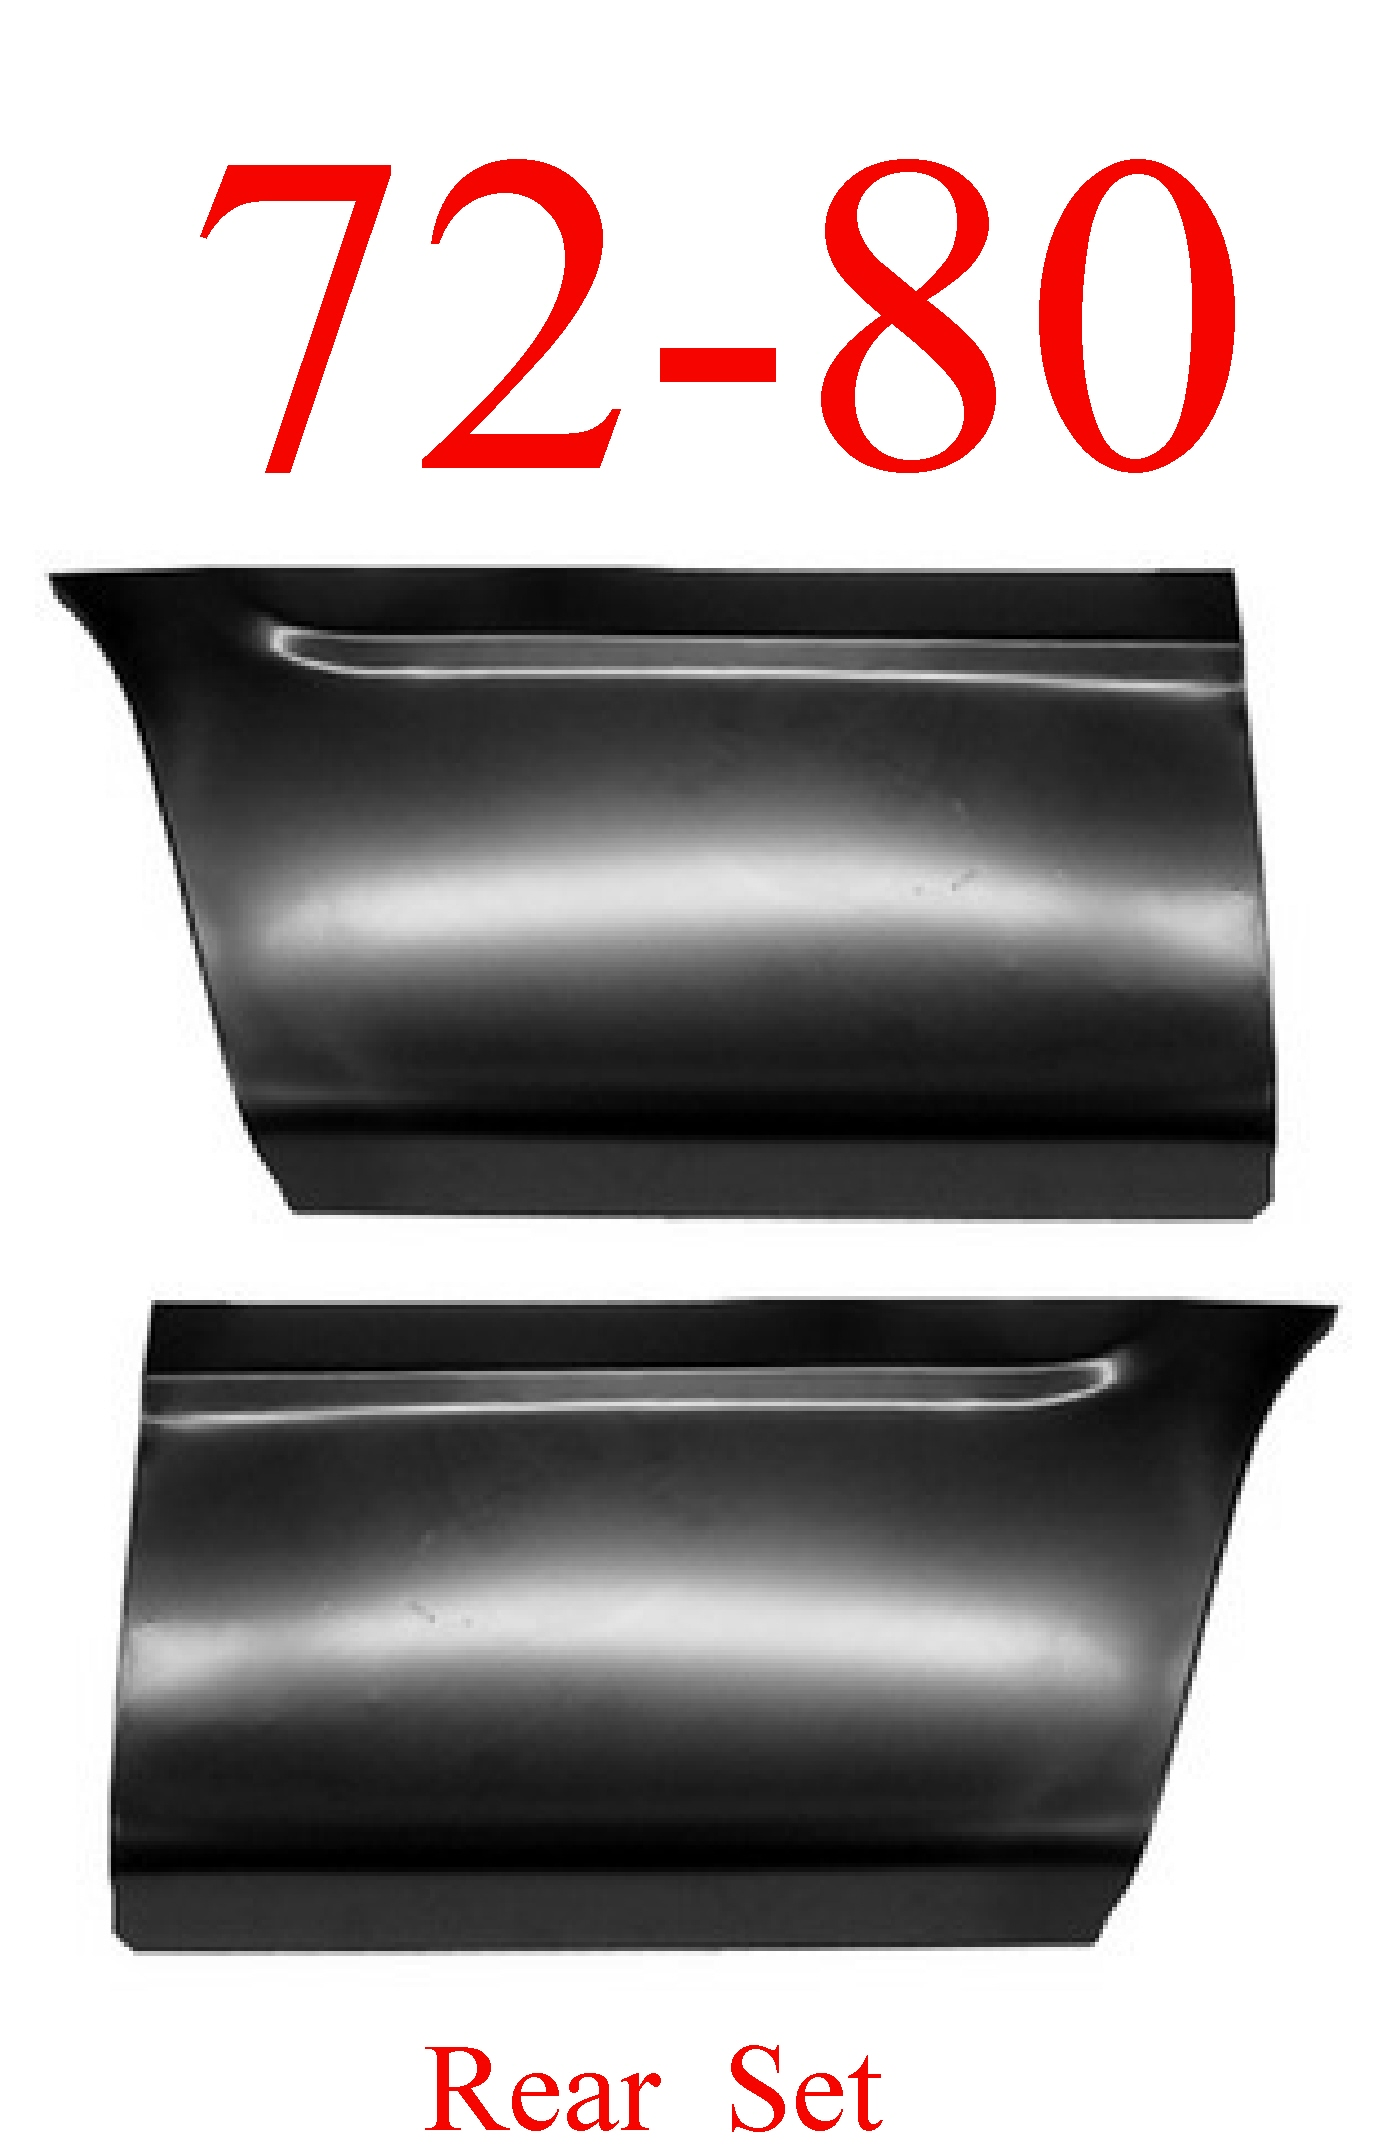 72-80 Dodge Rear Lower Bed Panel Set 8'